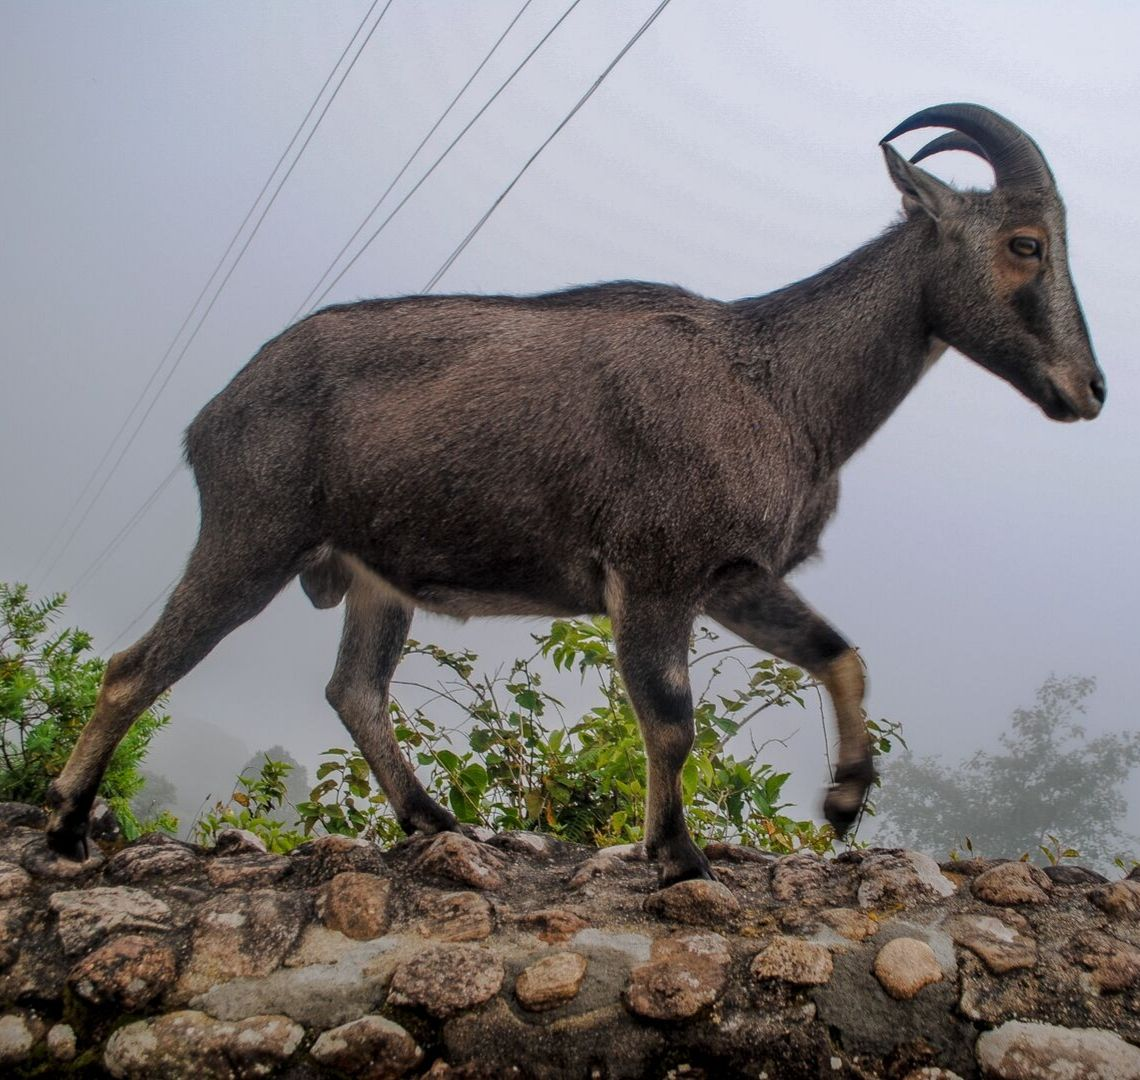 10 Day Kerala Itinerary - Nilgiry Thar Mountain Goat walking along a wall